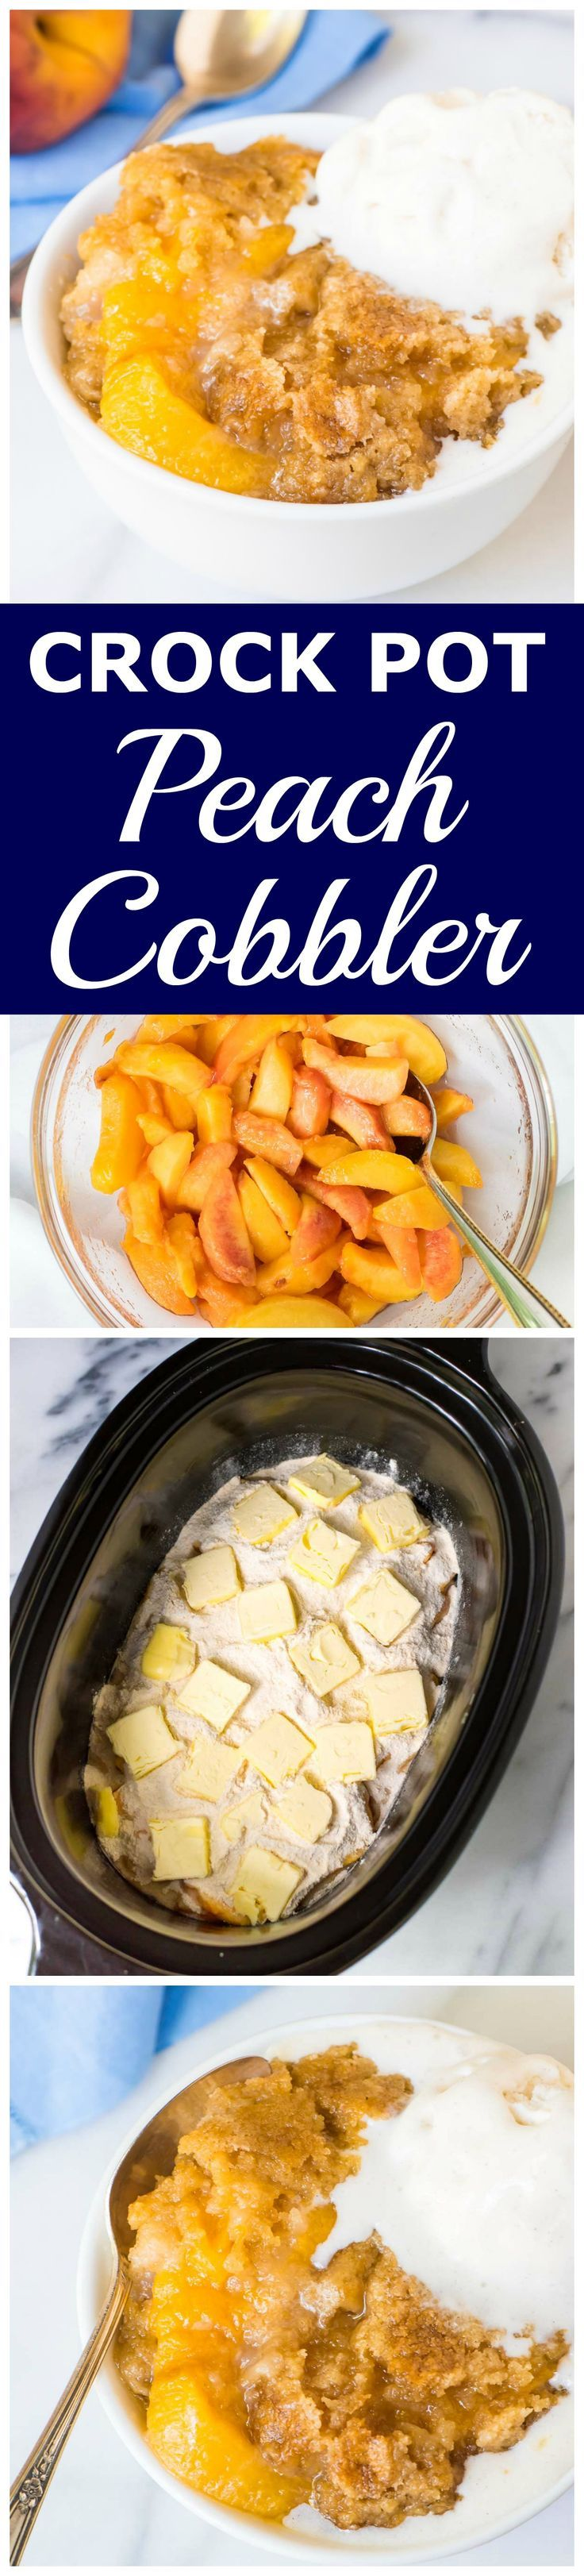 Crock Pot Peach Cobbler —  EASY recipe made like a dump cake. Just put the ingredients in your slow cooker and walk away! Juicy peaches, buttery golden crust, and your crockpot does the work. Recipe at wellplated.com @wellplated